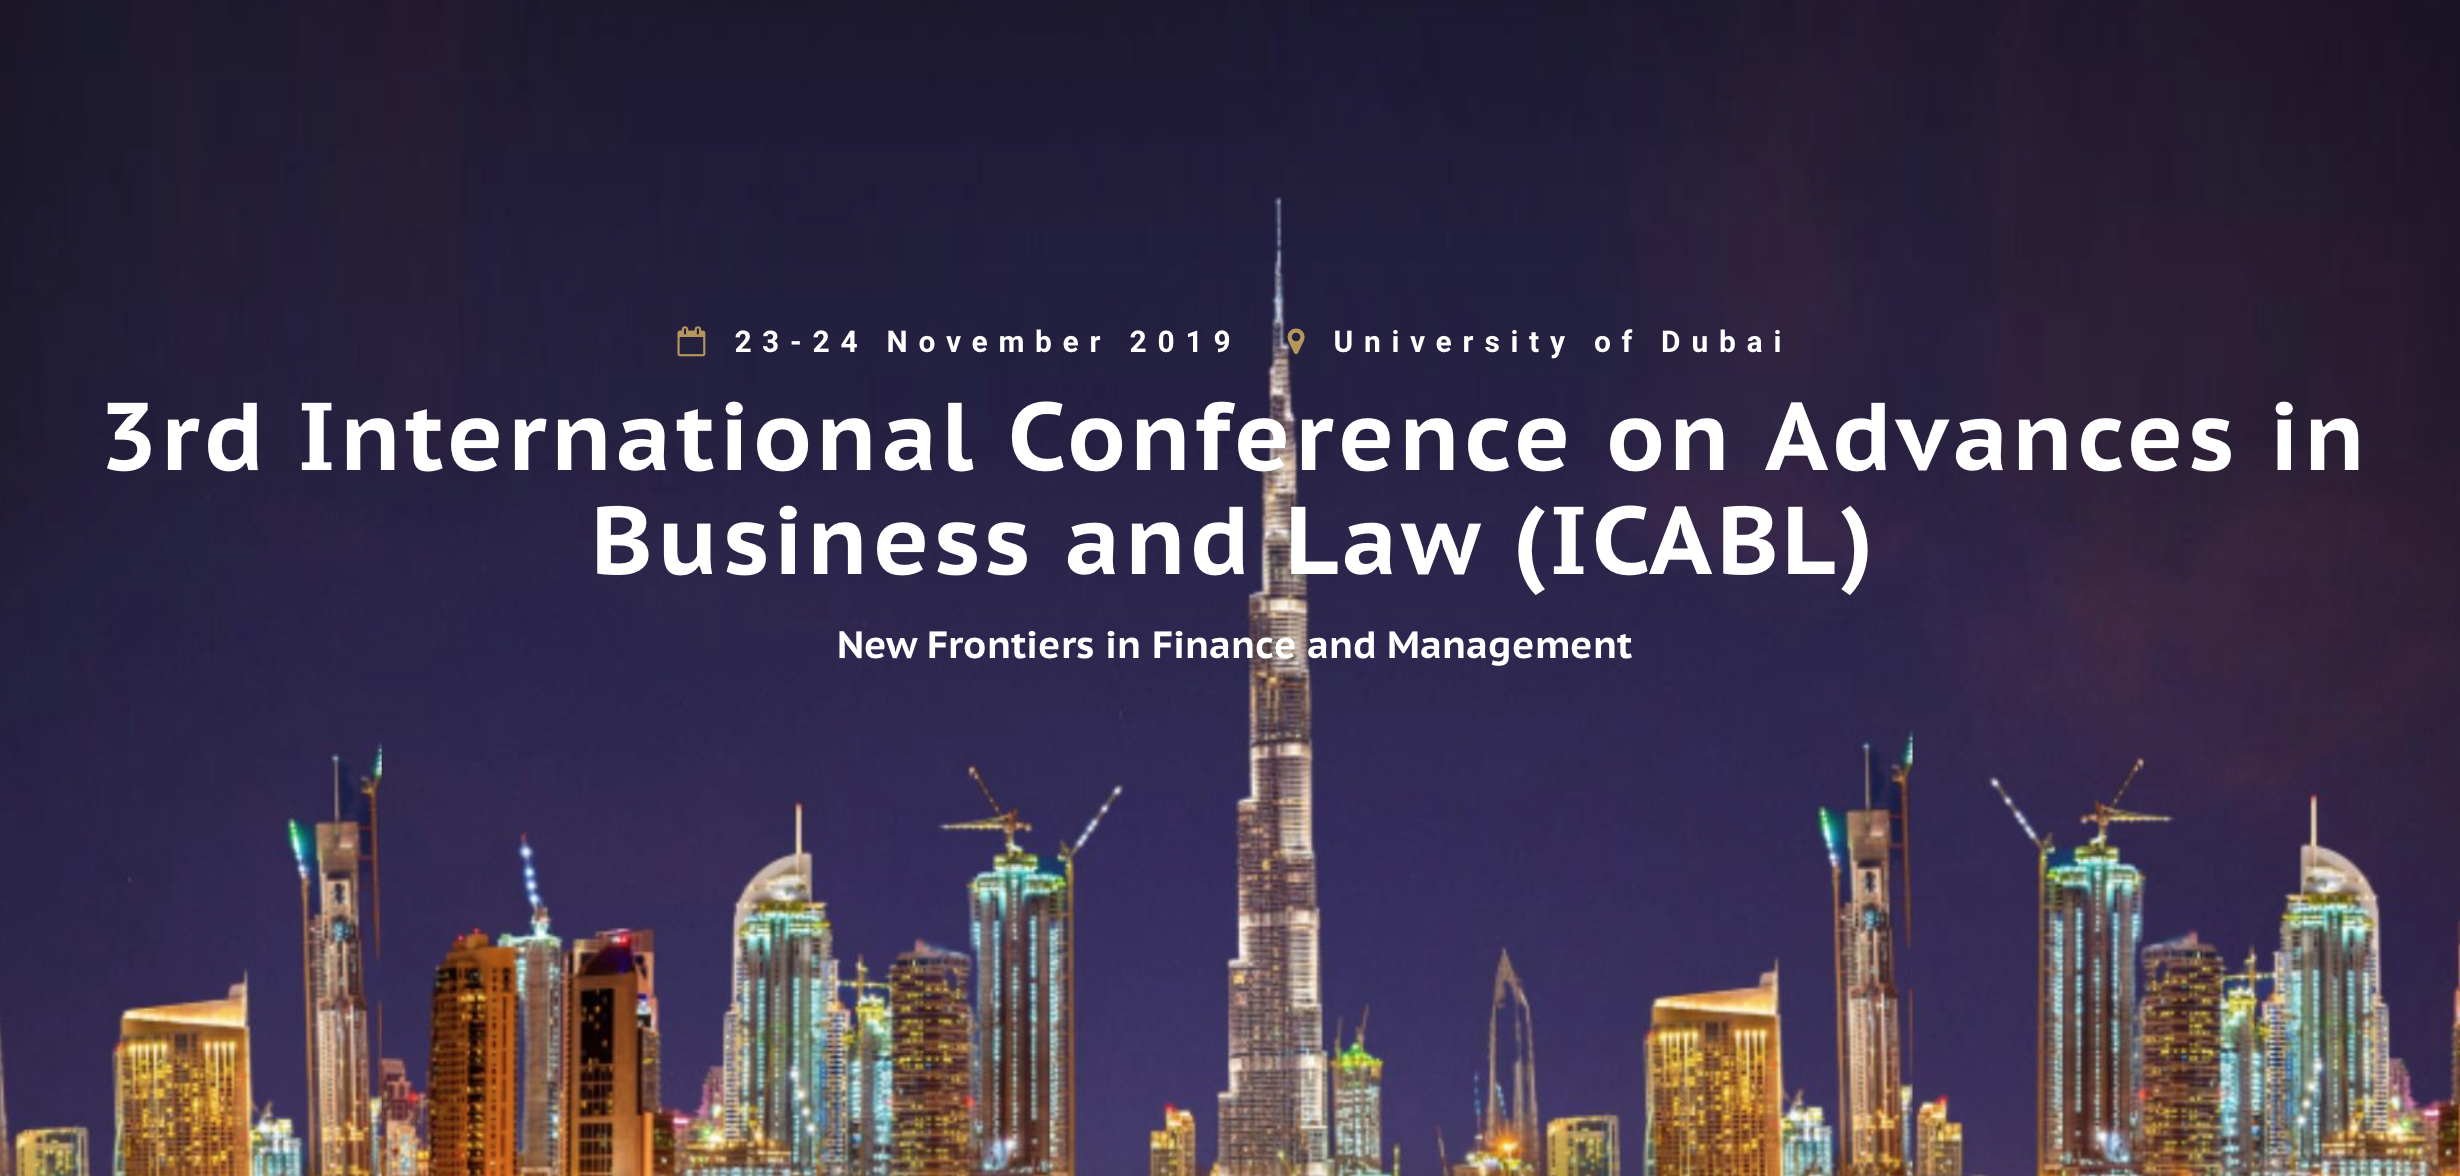 #Dubai @UniOfDubai 3rd International Conference on Advances in #Business and #Law (ICABL) #NoCriticsJustPolitics